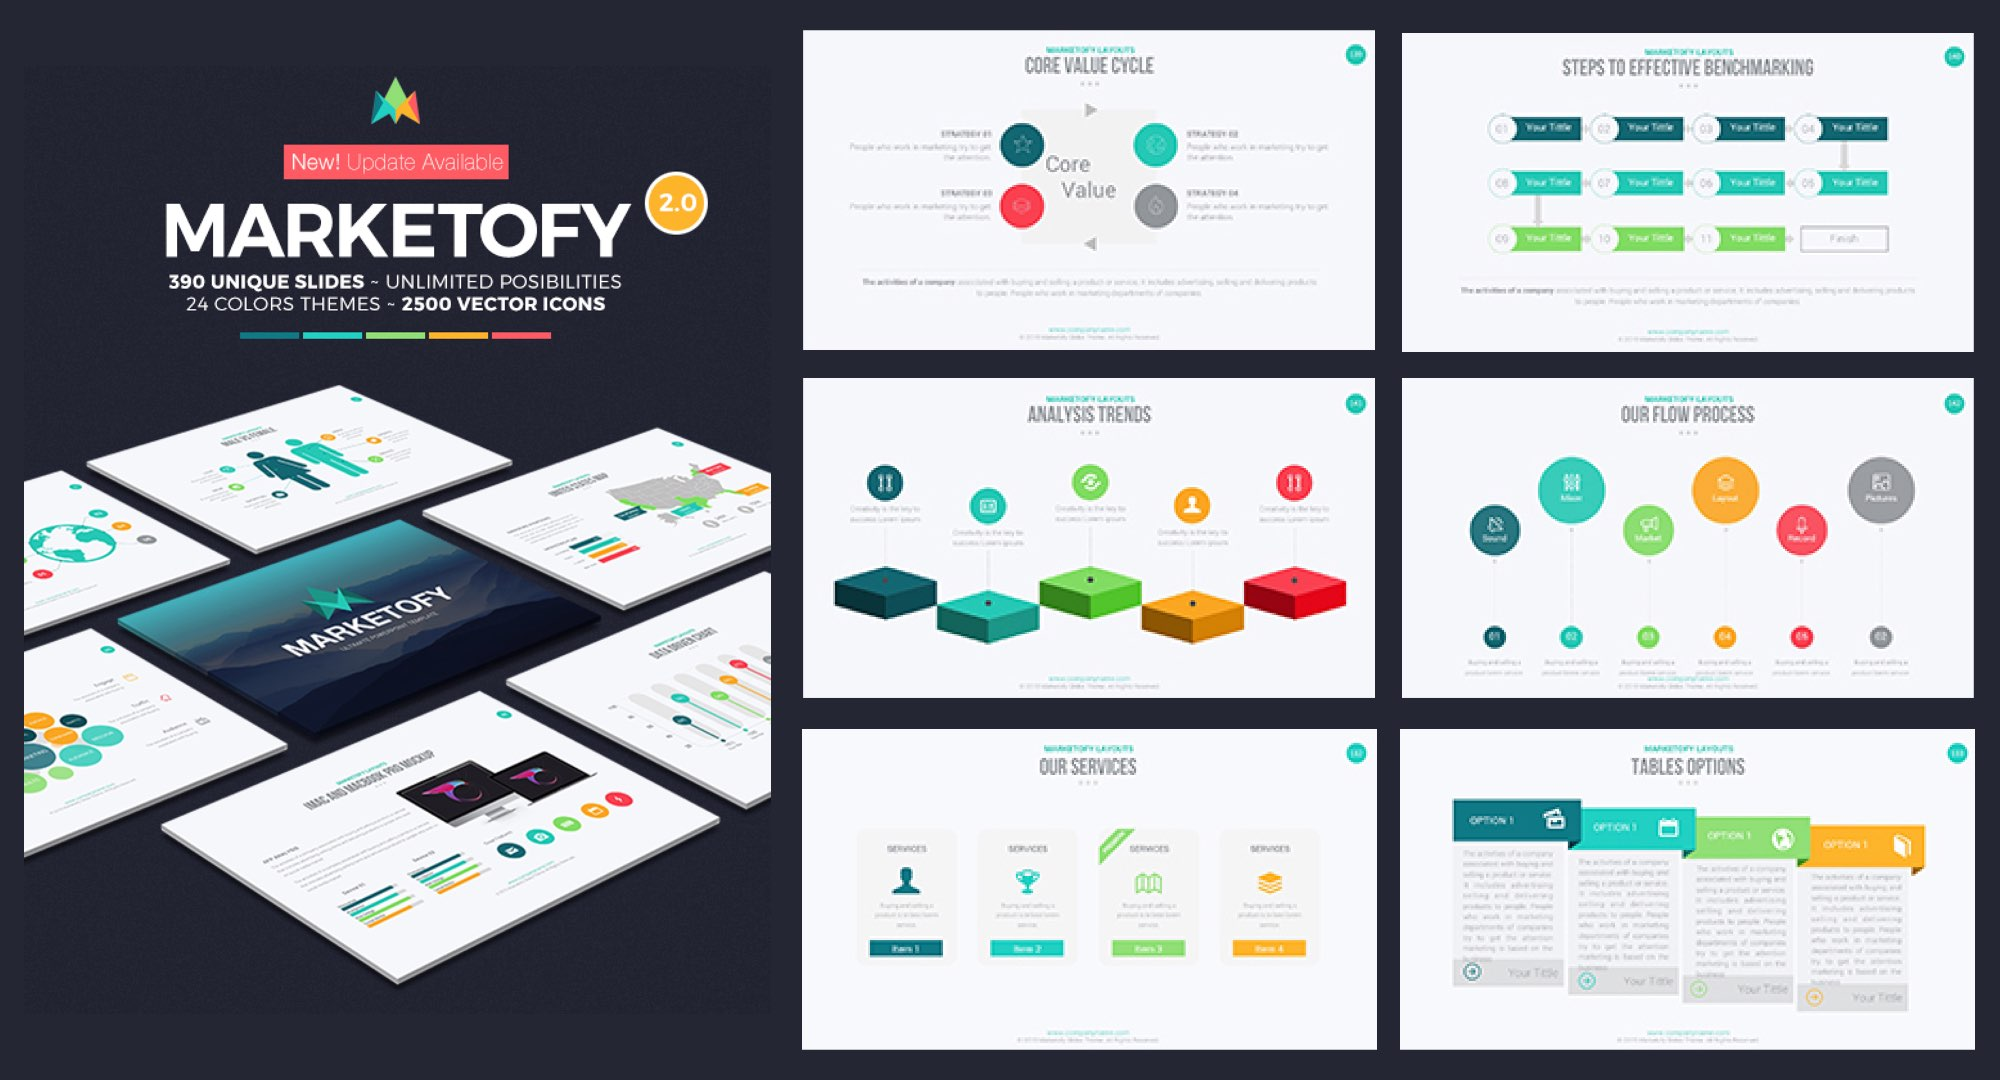 40 best powerpoint presentations you can't miss, Powerpoint templates